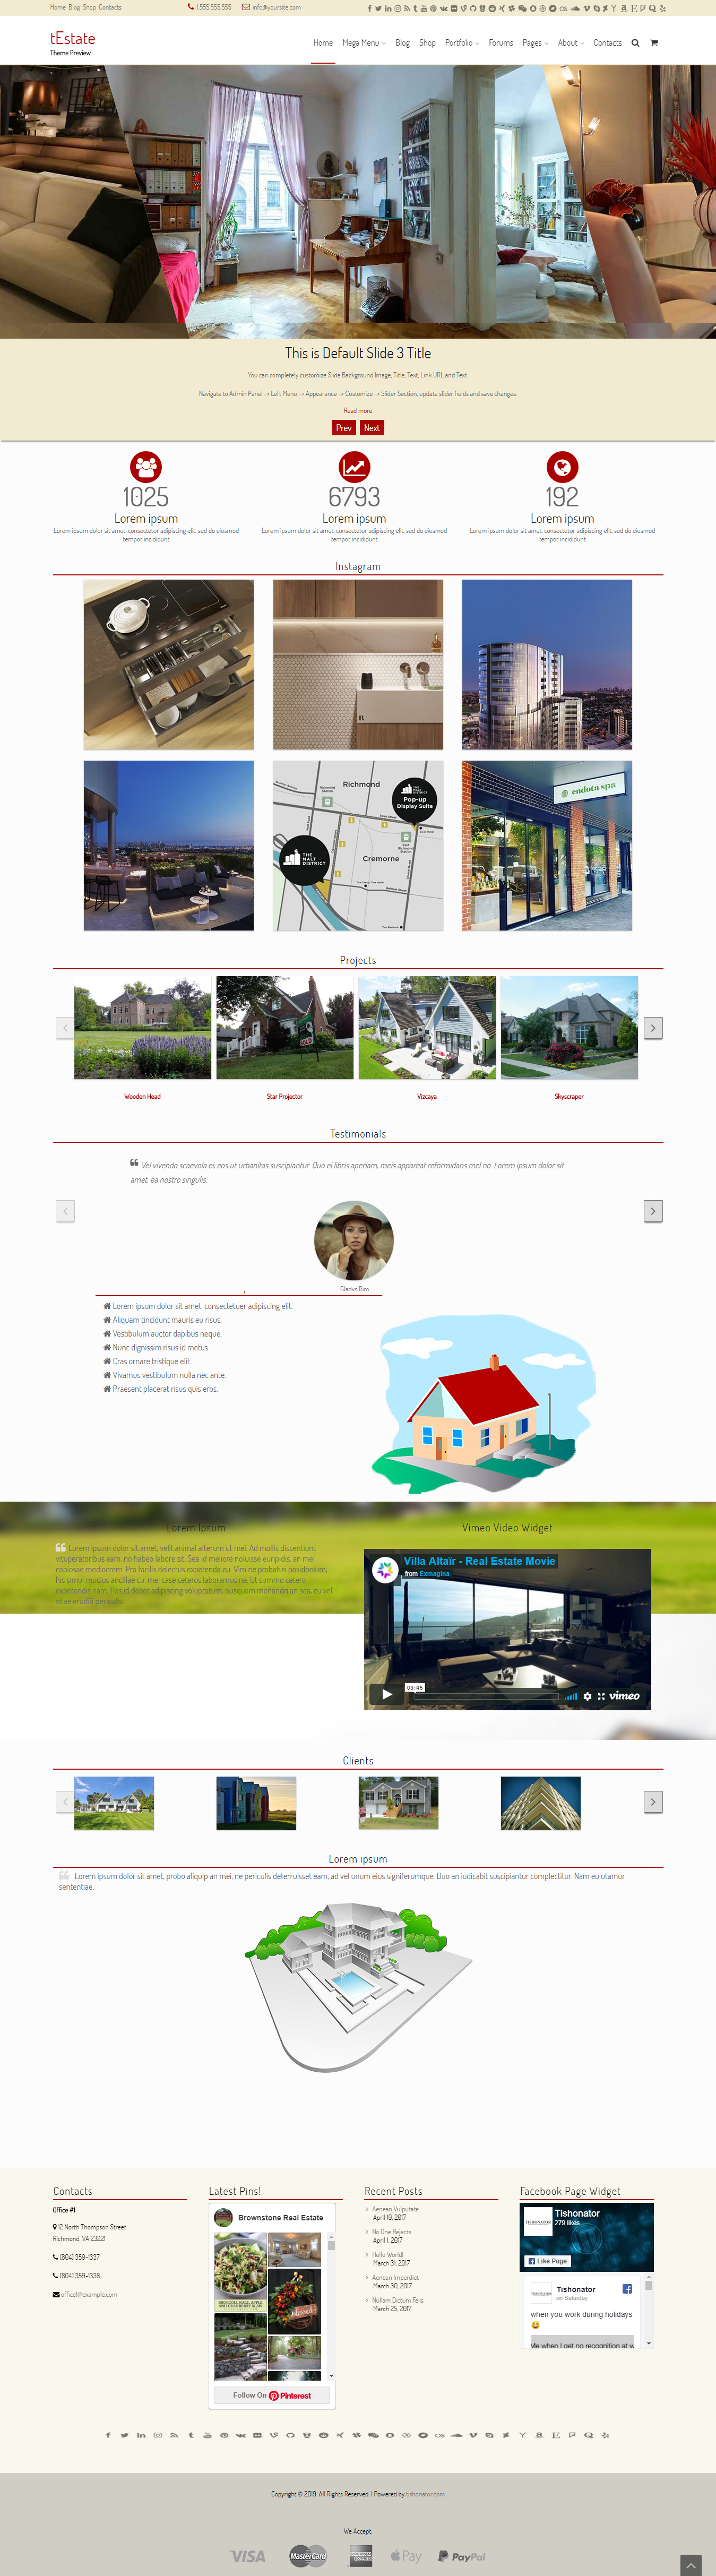 festate best free home rental property wordpress theme - 10+ Best Free Home Rental and Property WordPress Themes